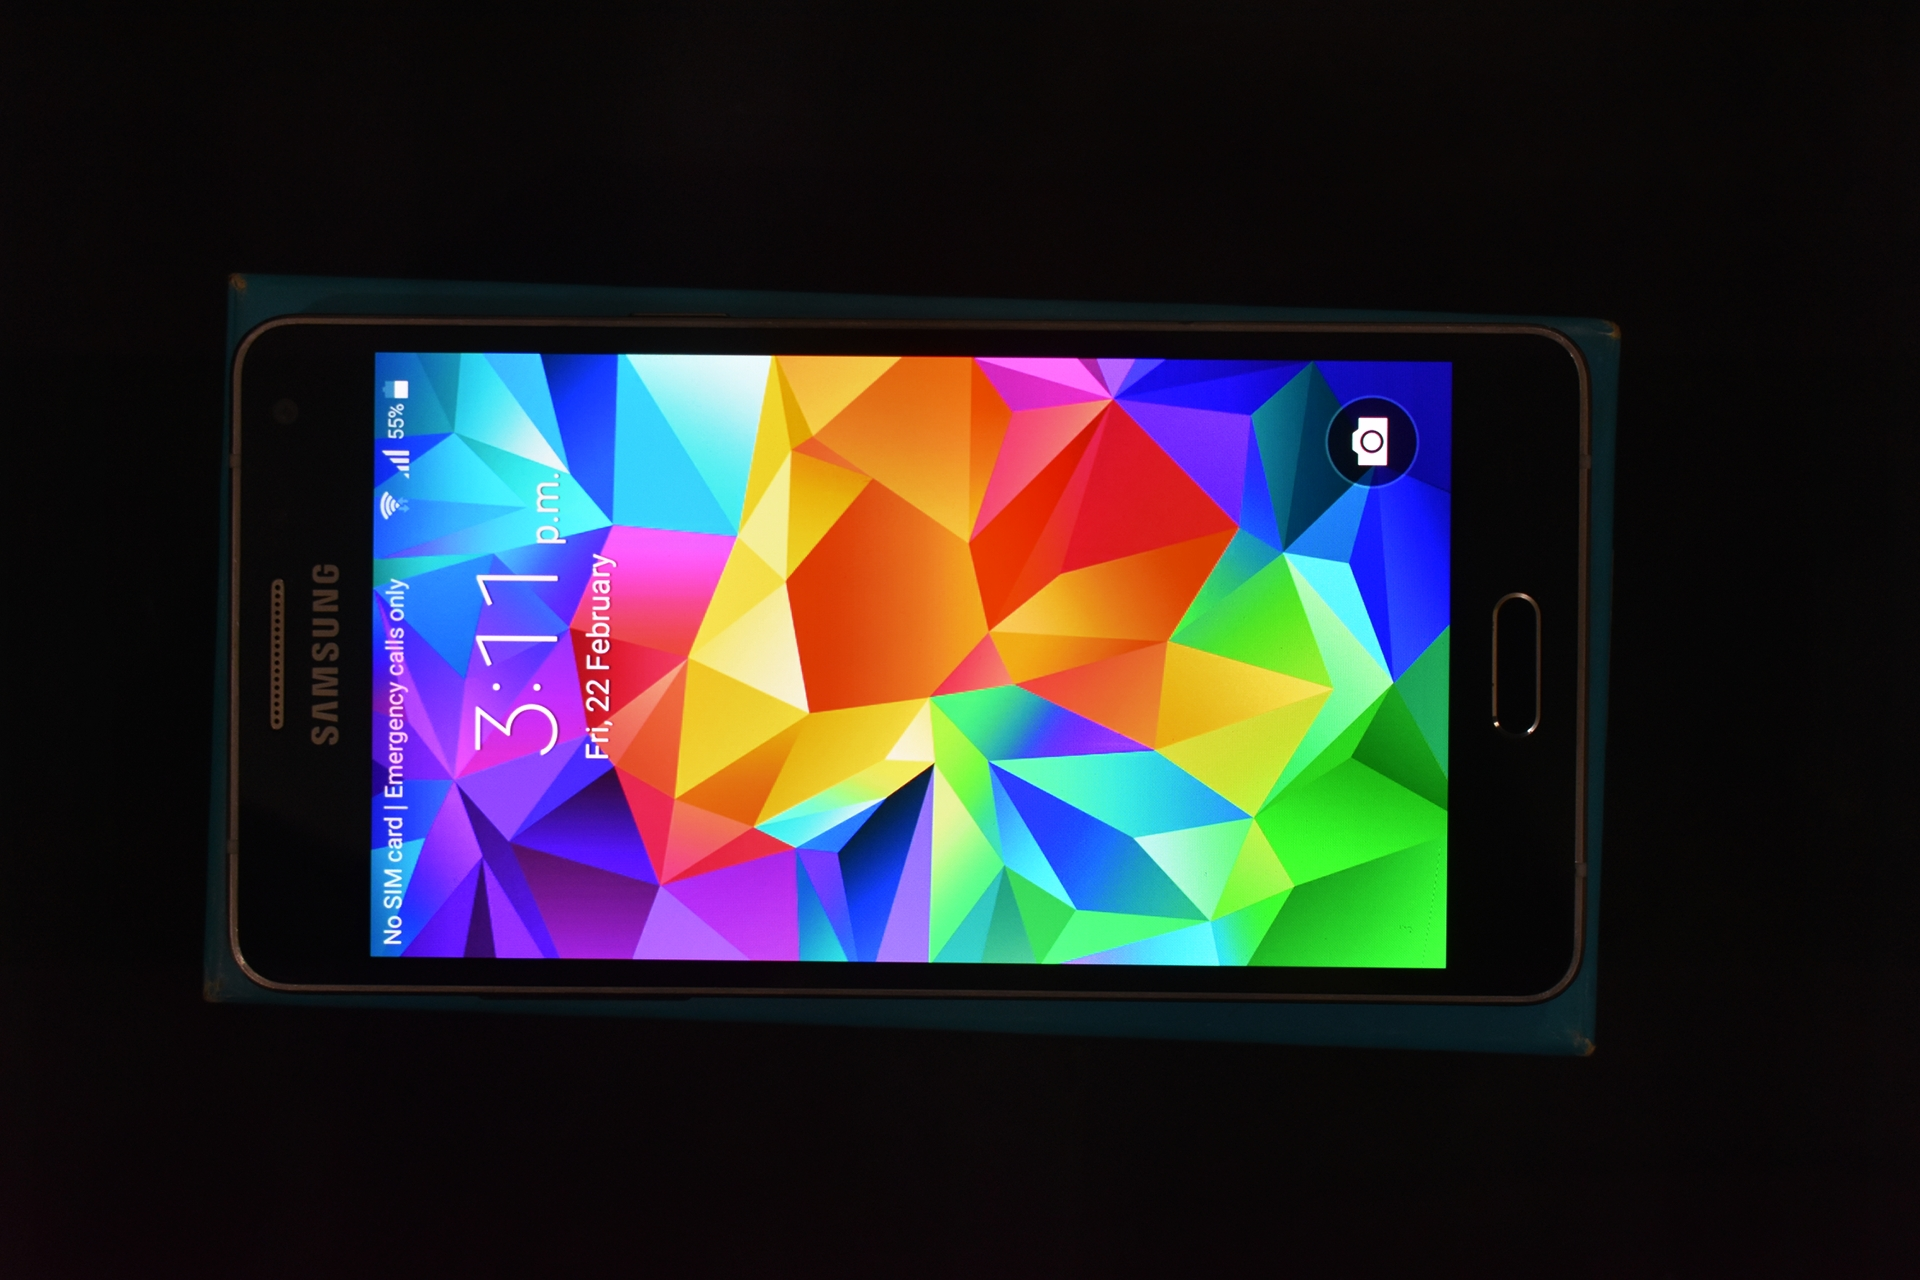 Samsung A5 2015 (With Complete Box) - photo 2